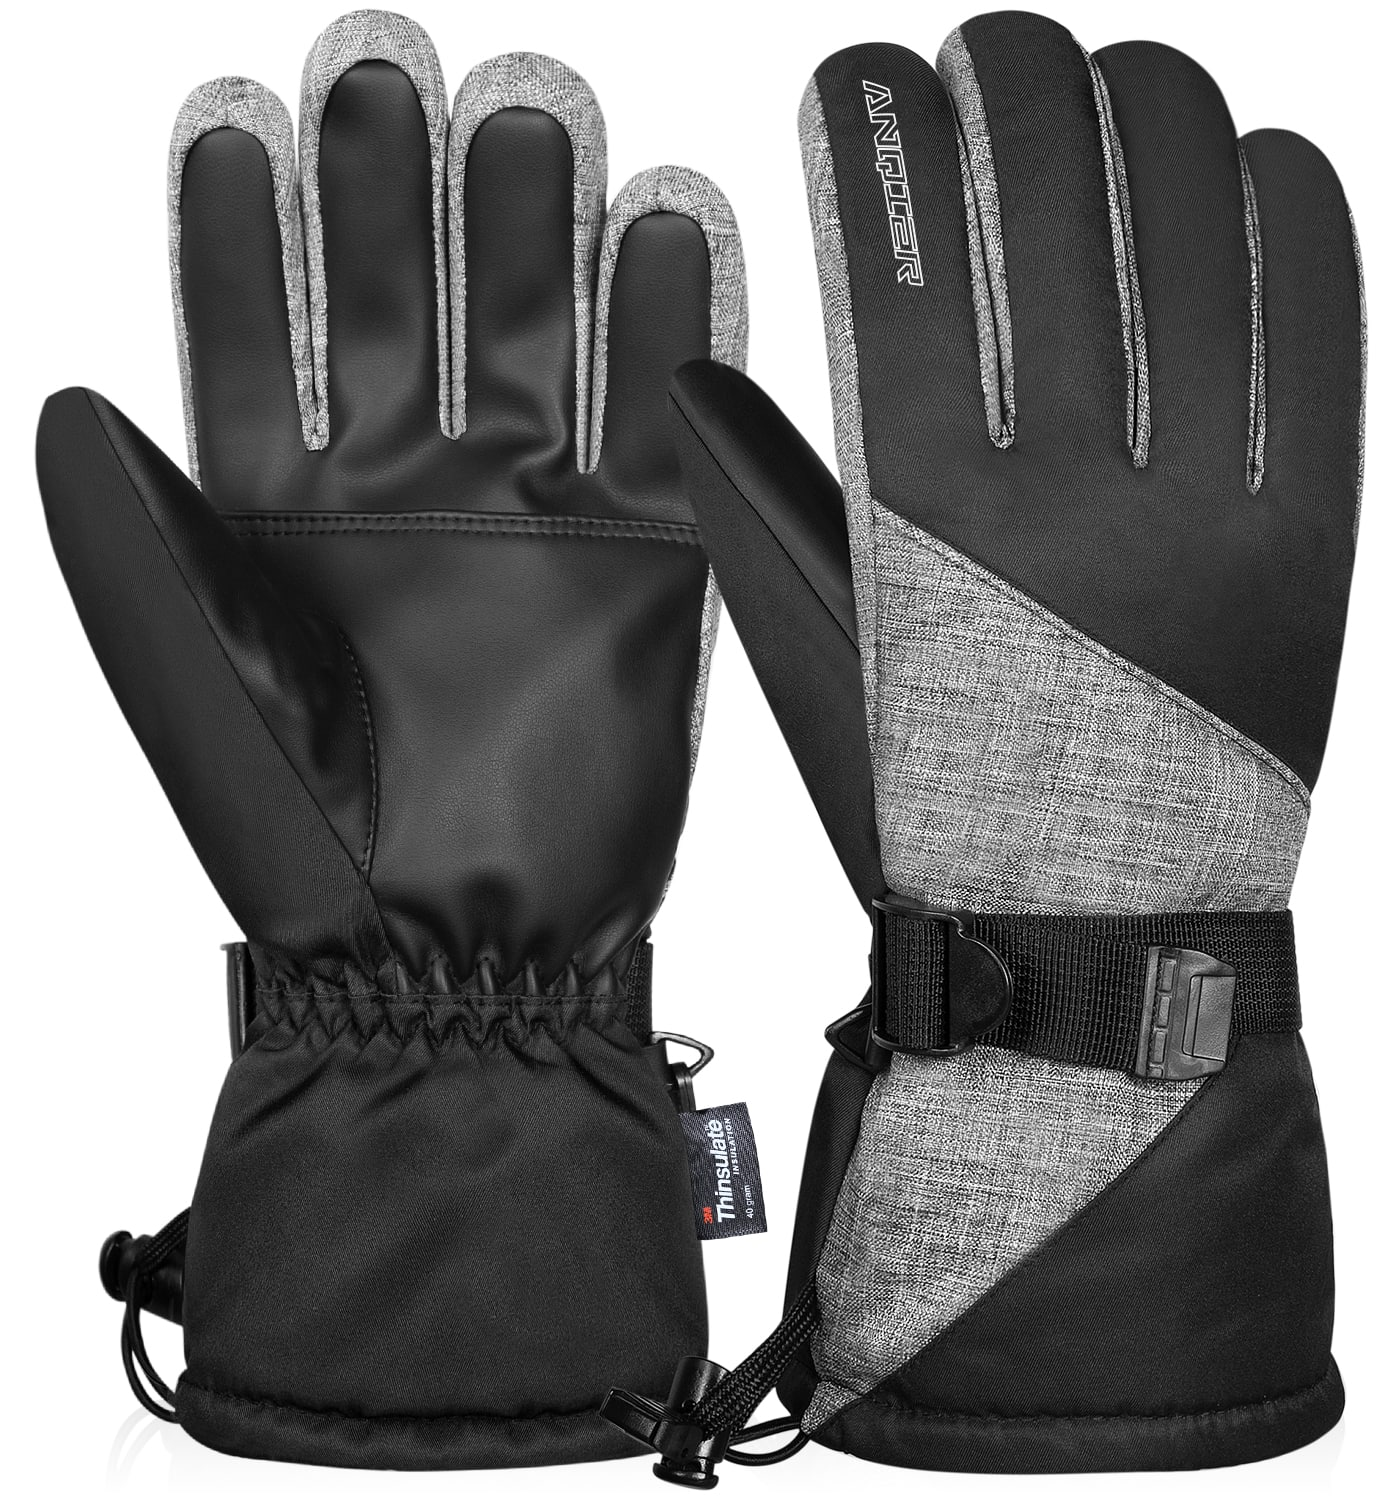 Anqier Waterproof 3M Thinsulate Winter Thermal Ski Gloves $10.99+ Free Shipping